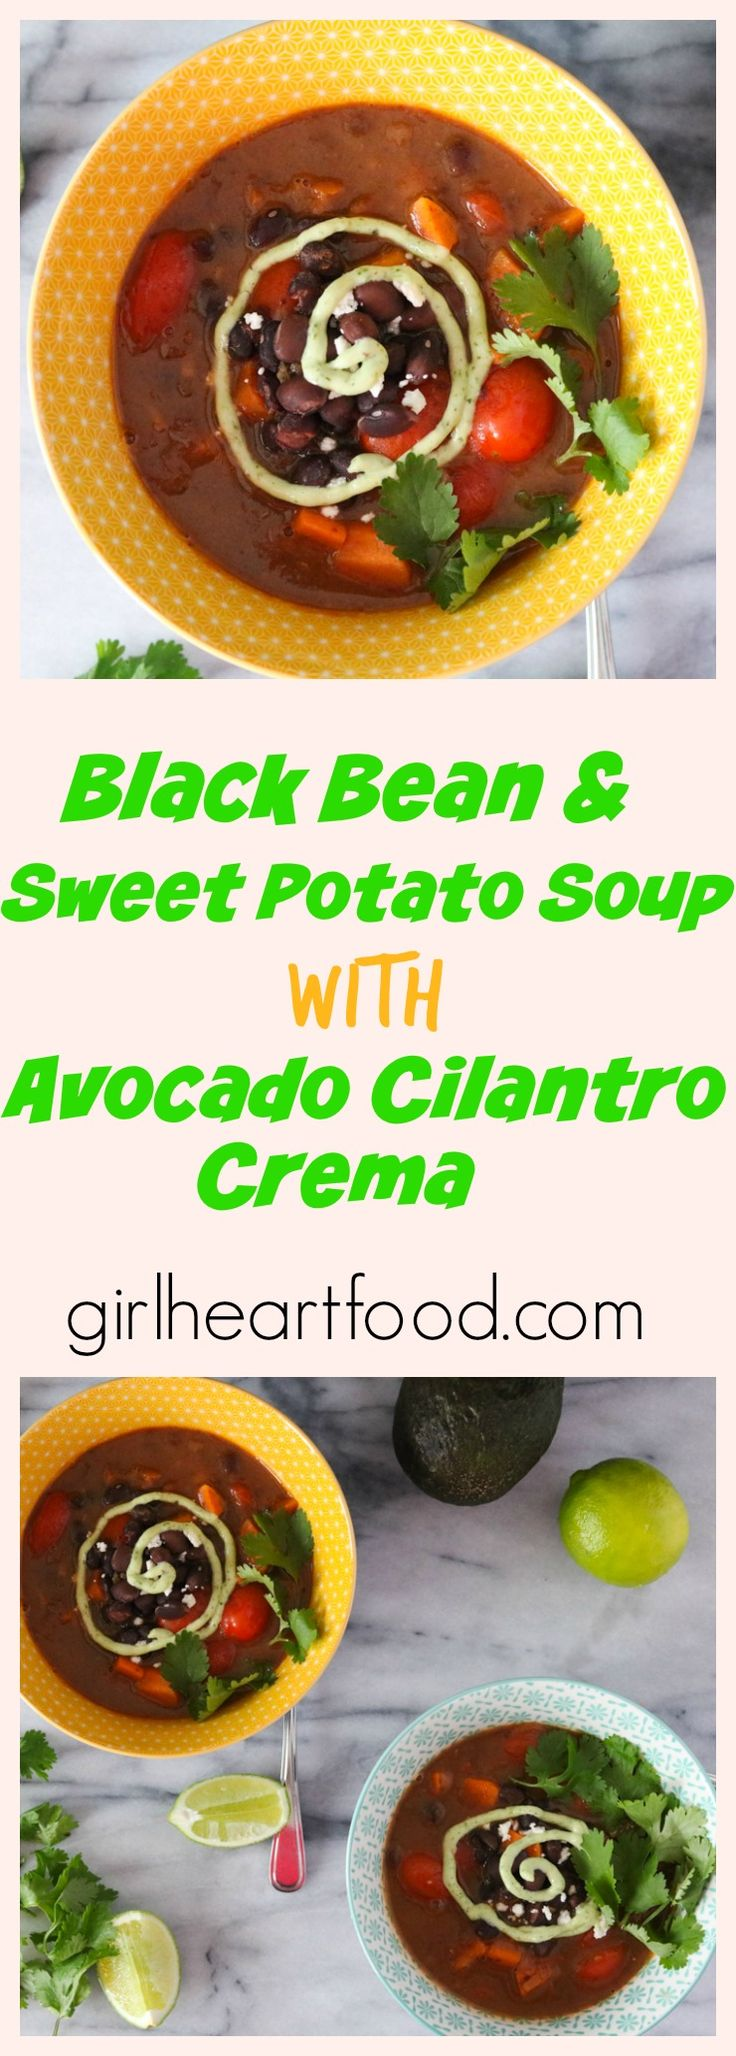 Black Bean and Sweet Potato Soup with Avocado cilantroCrema This Black Bean and Sweet Potato Soup with AvocadoCilantroCrema packs all kinds of flavour in one little bowl. It's made with simple ingredients like black beans and sweet potato, of course, and spiced up with smoky chipotle peppers. The avocado crema adds a pretty touch, but …